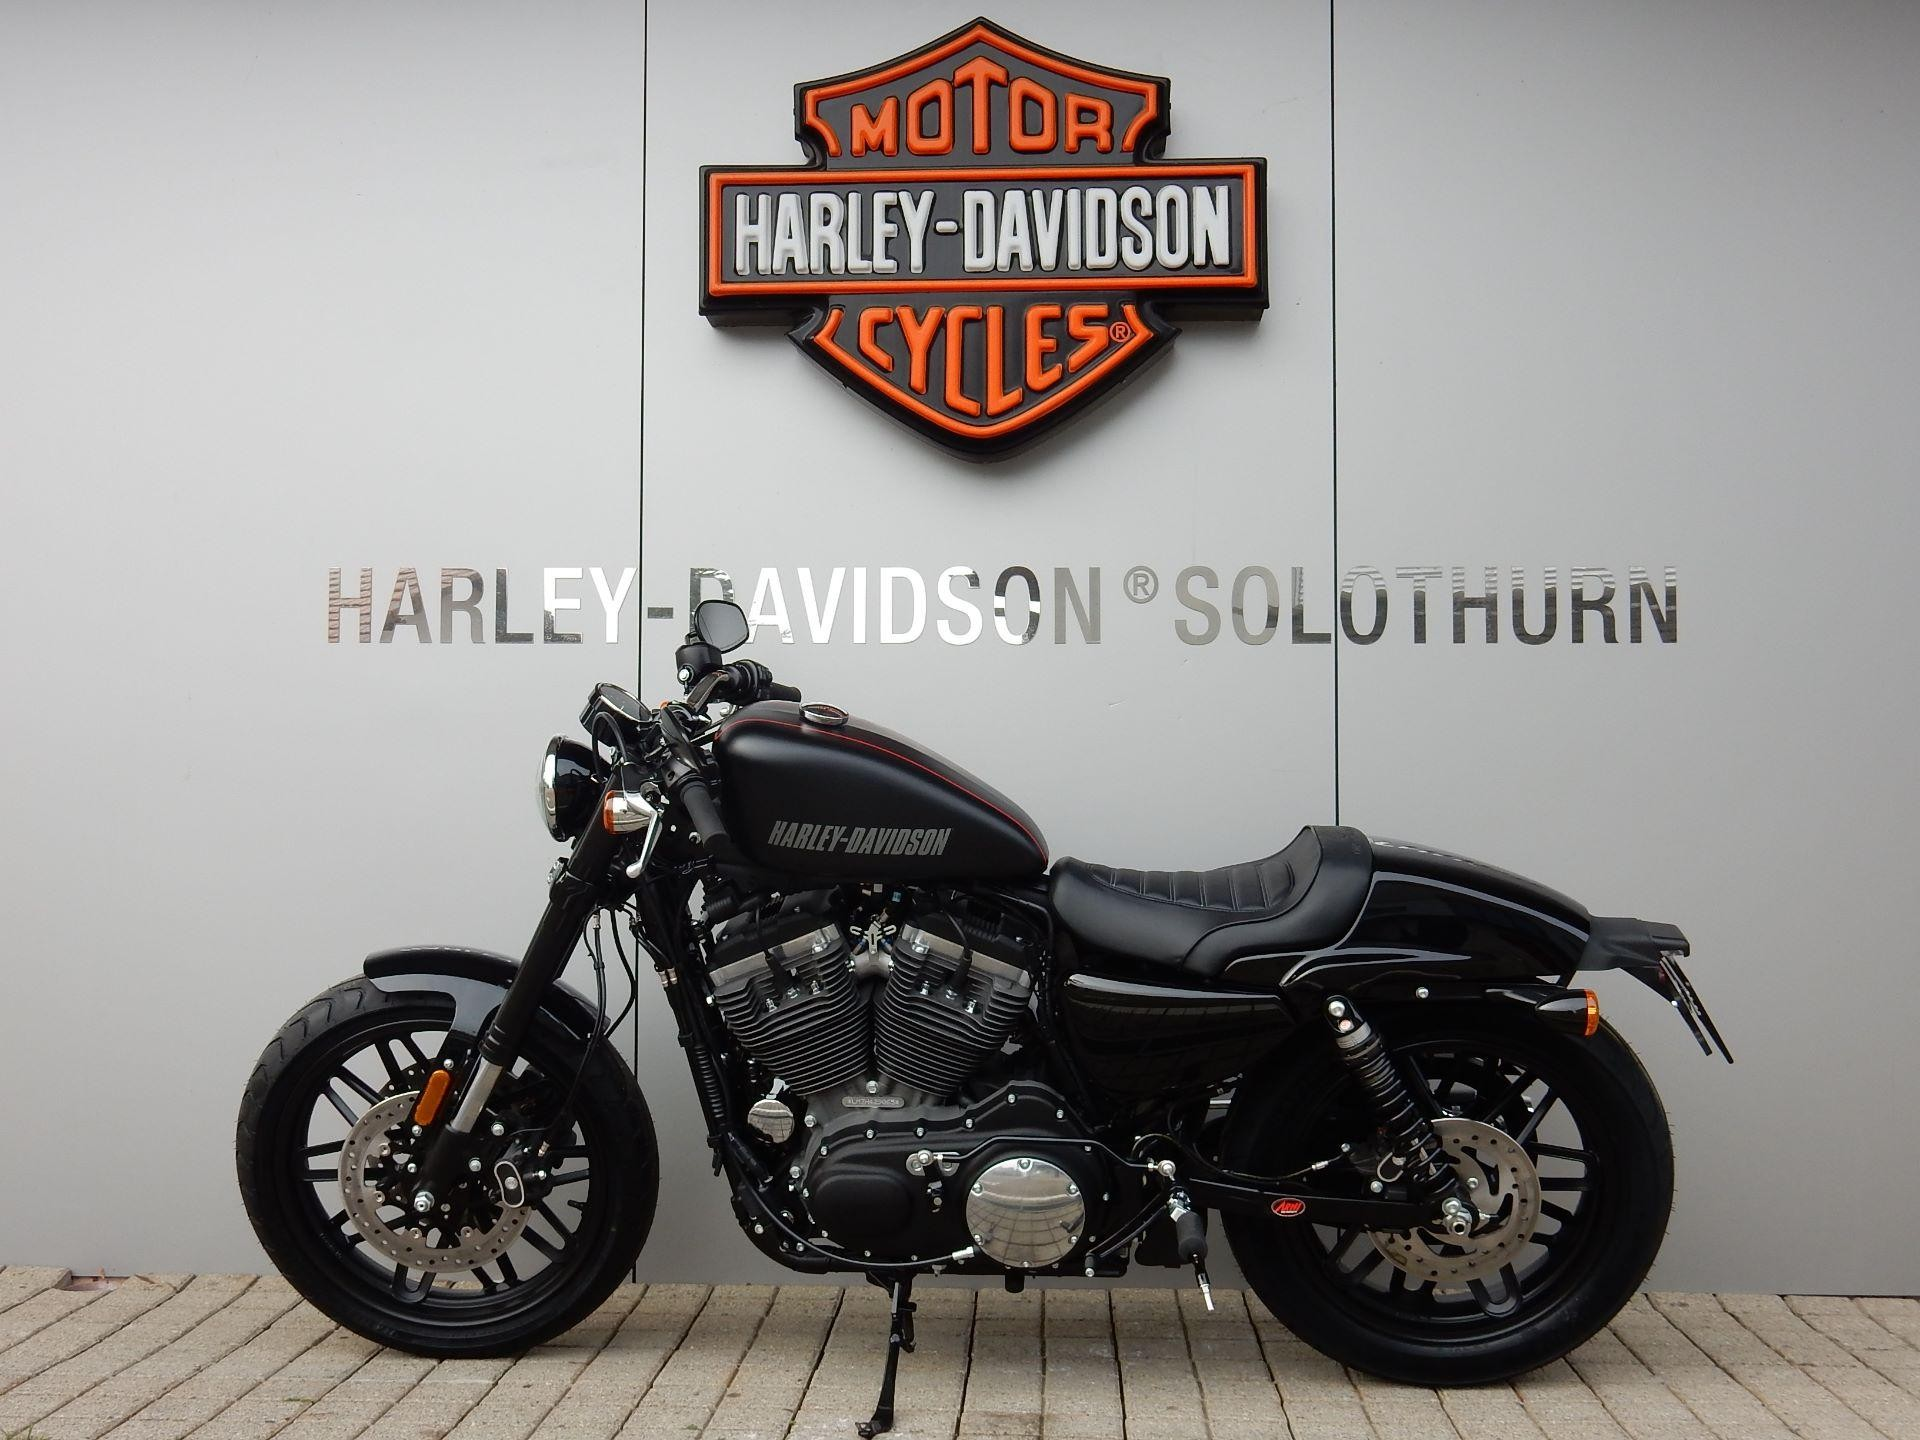 motorrad occasion kaufen harley davidson xl 1200 cx sportster roadster abs arni harley davidson. Black Bedroom Furniture Sets. Home Design Ideas